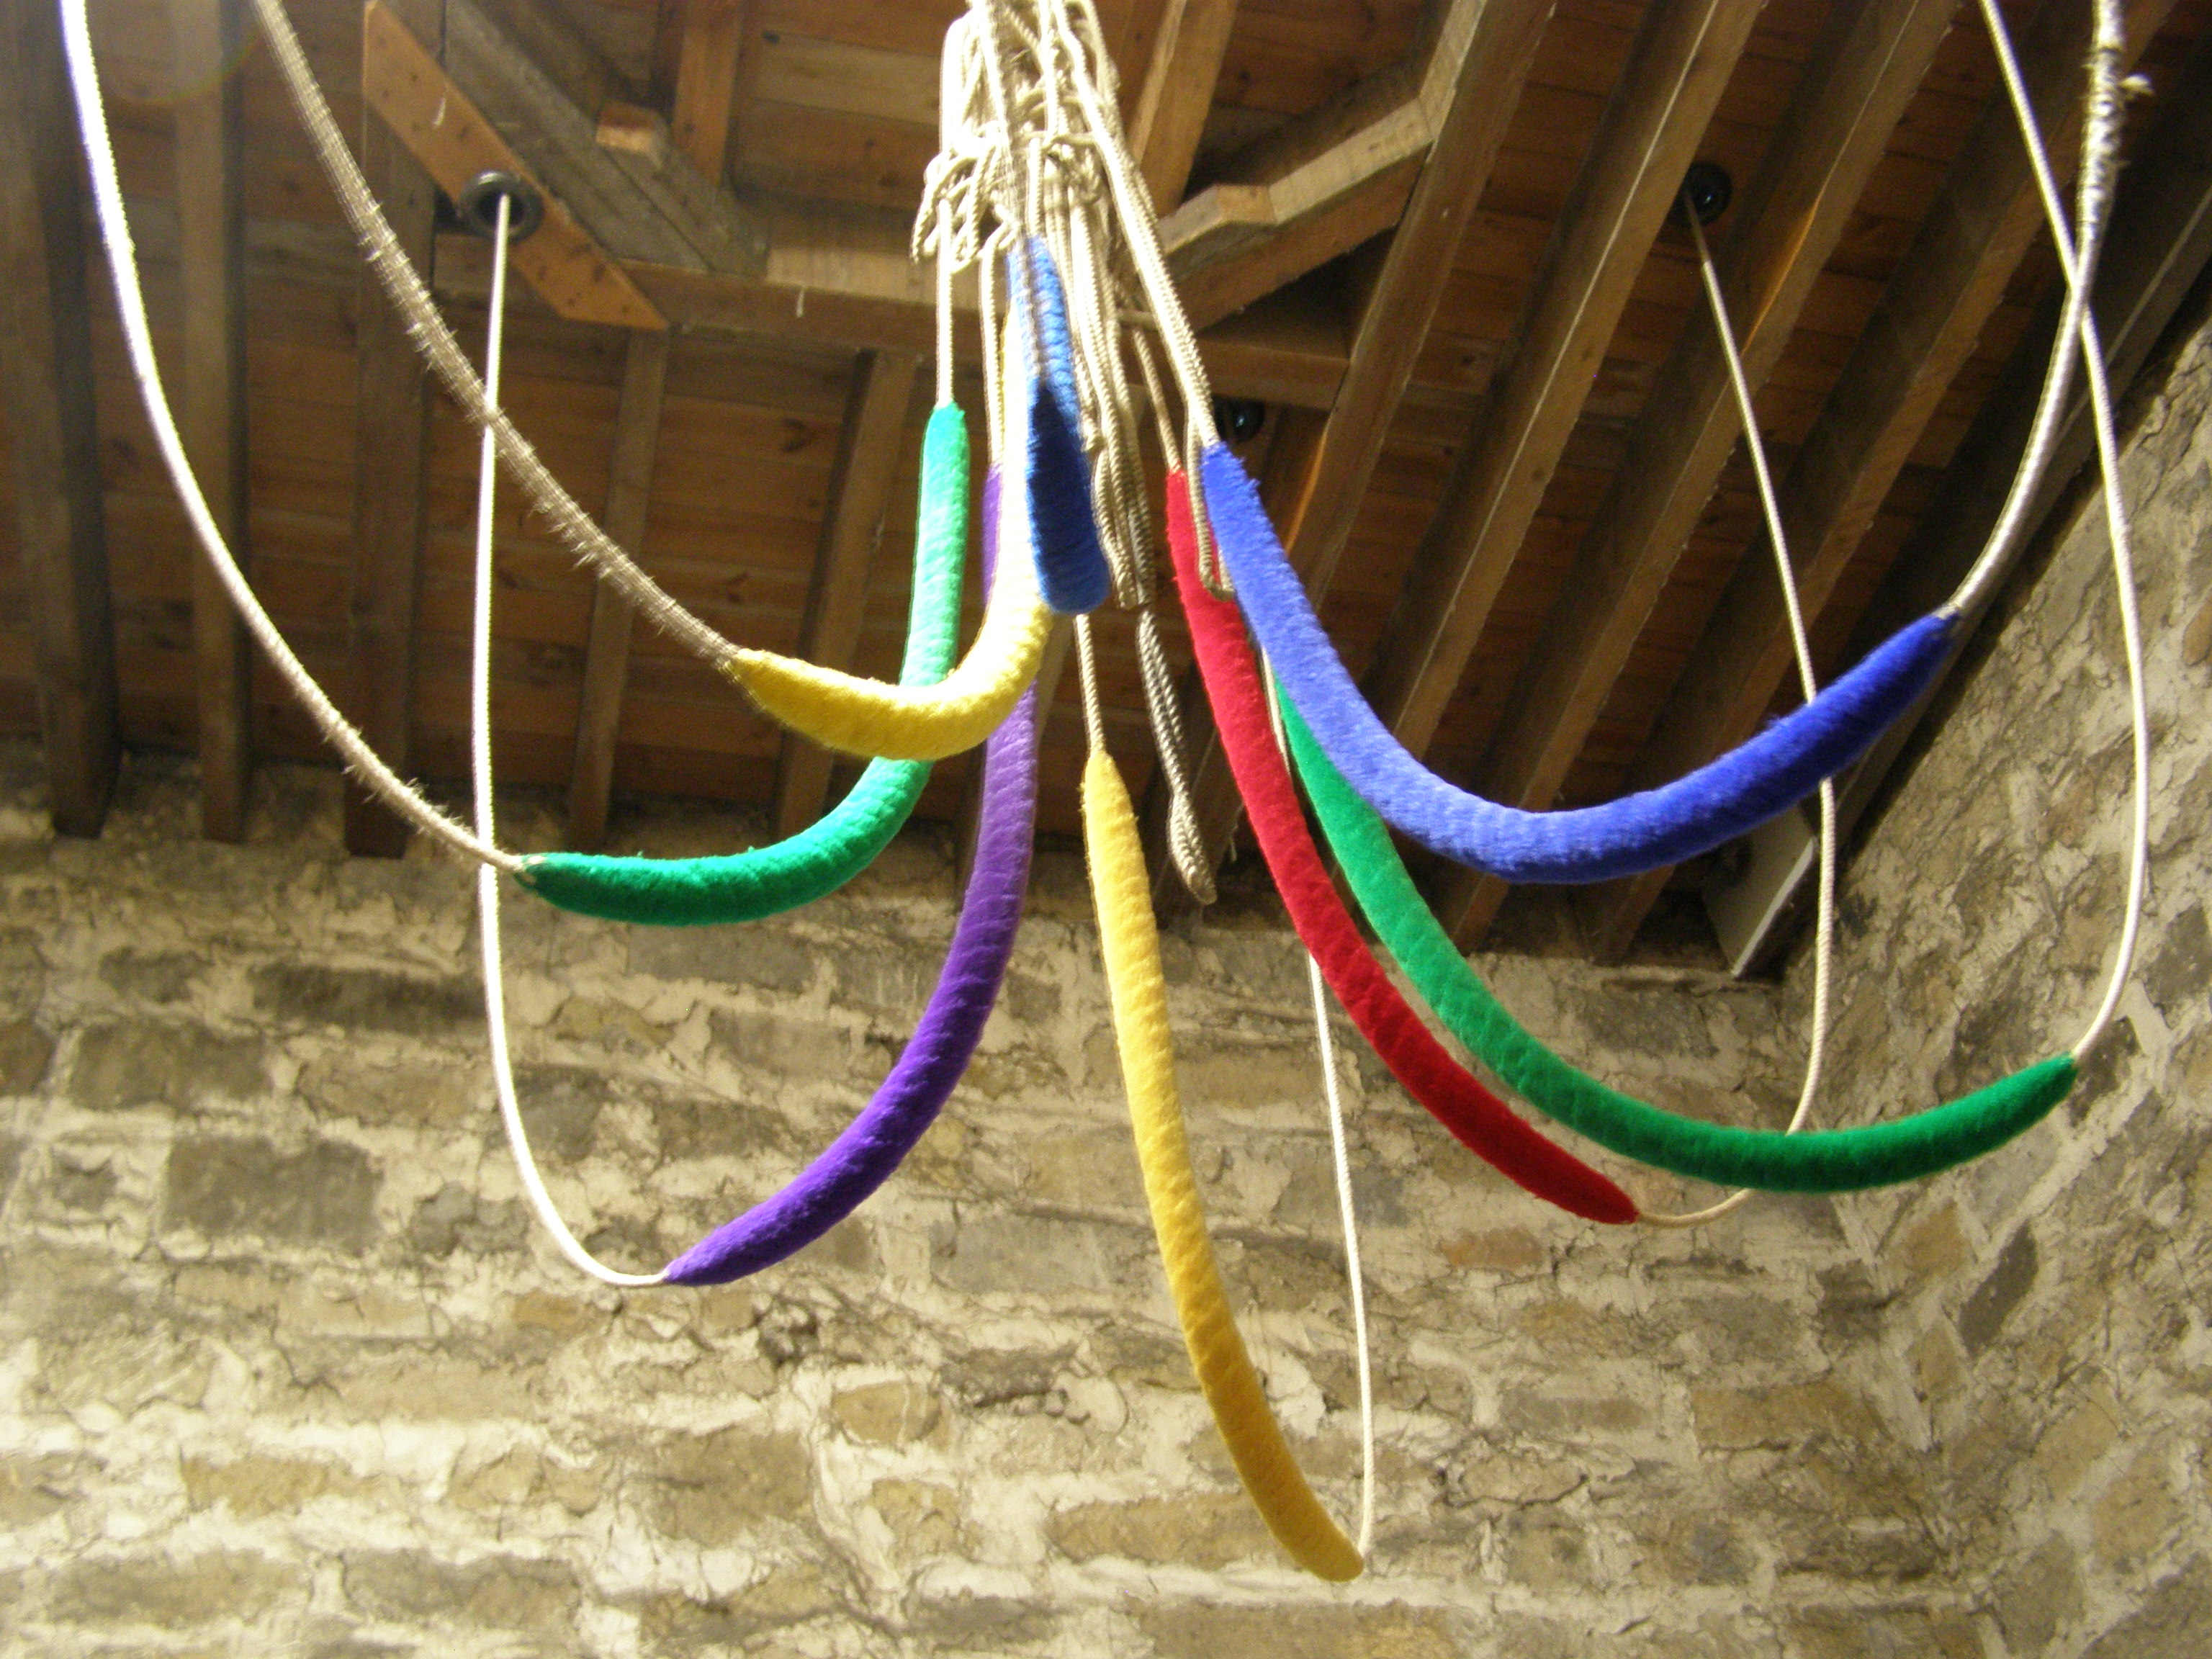 The liturgical coloured bell ropes